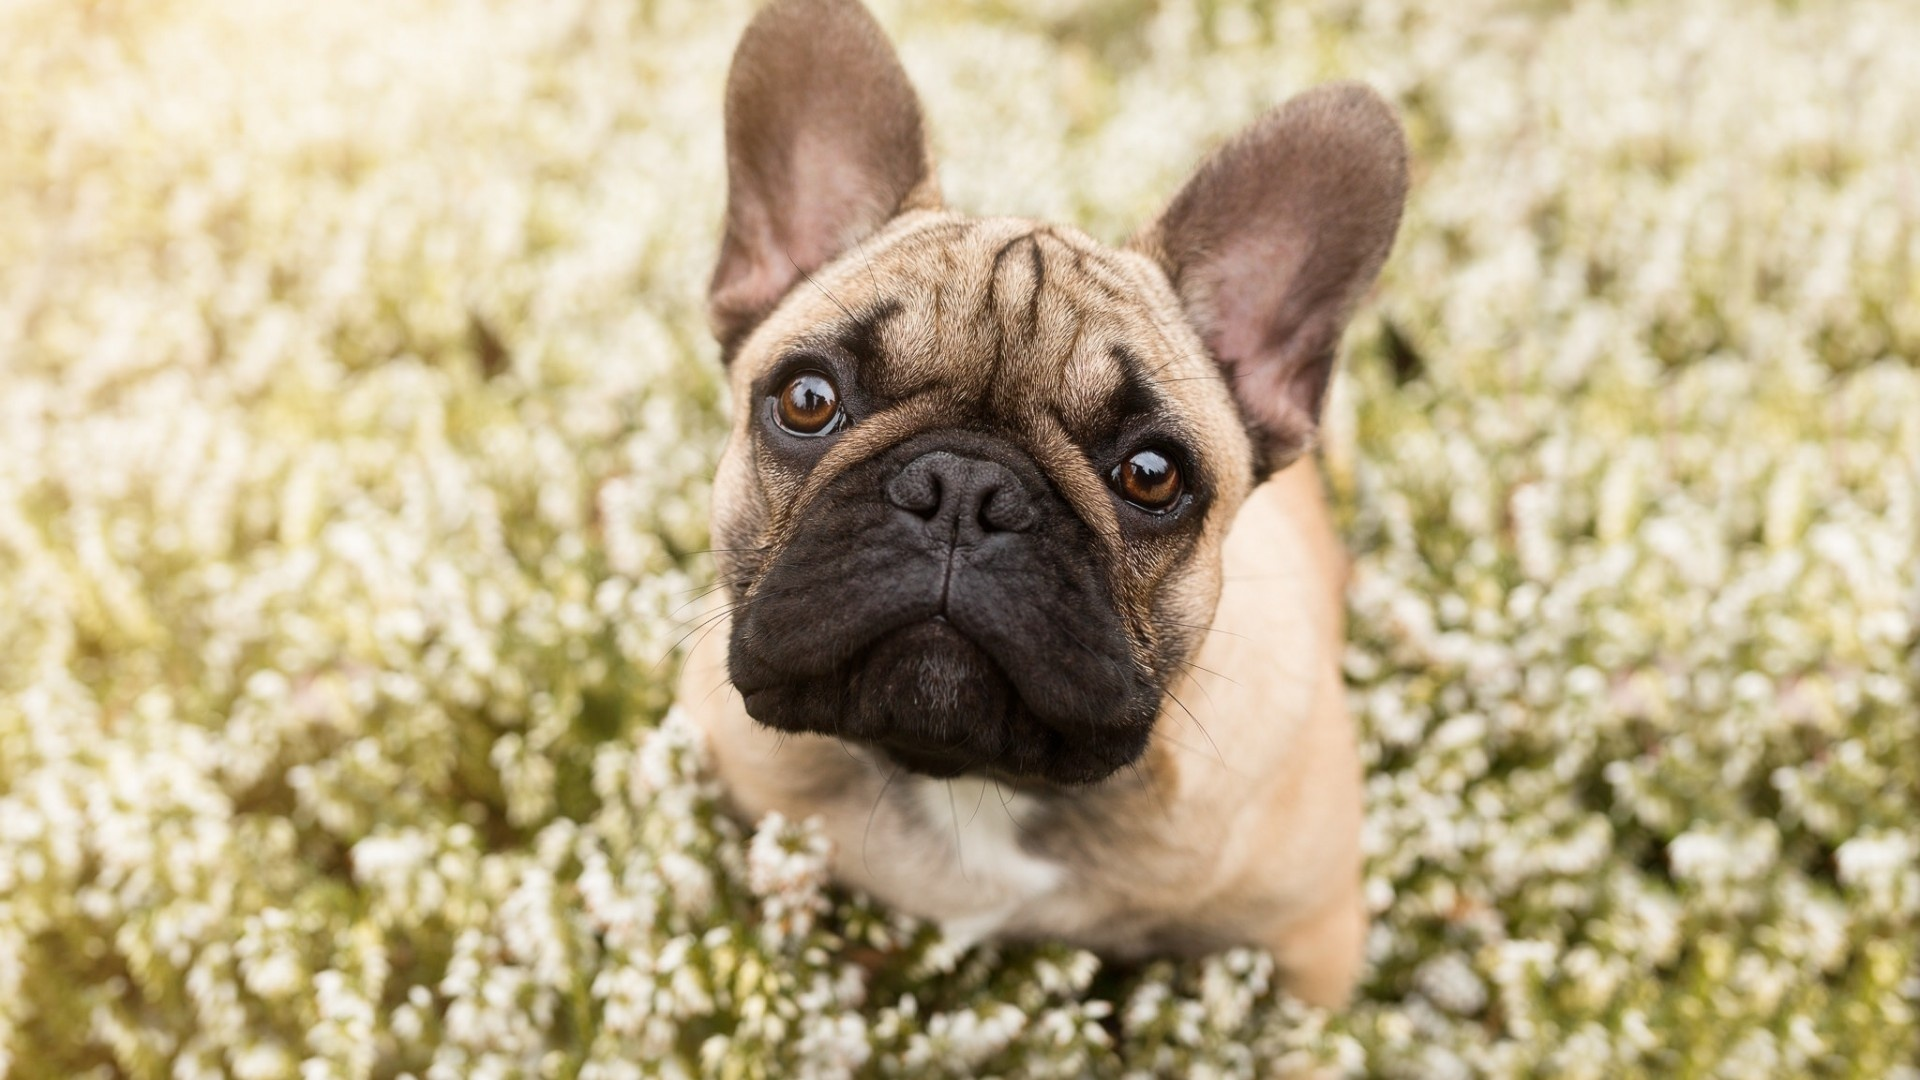 French Bulldog Wallpapers - 1920x1080 - 439521